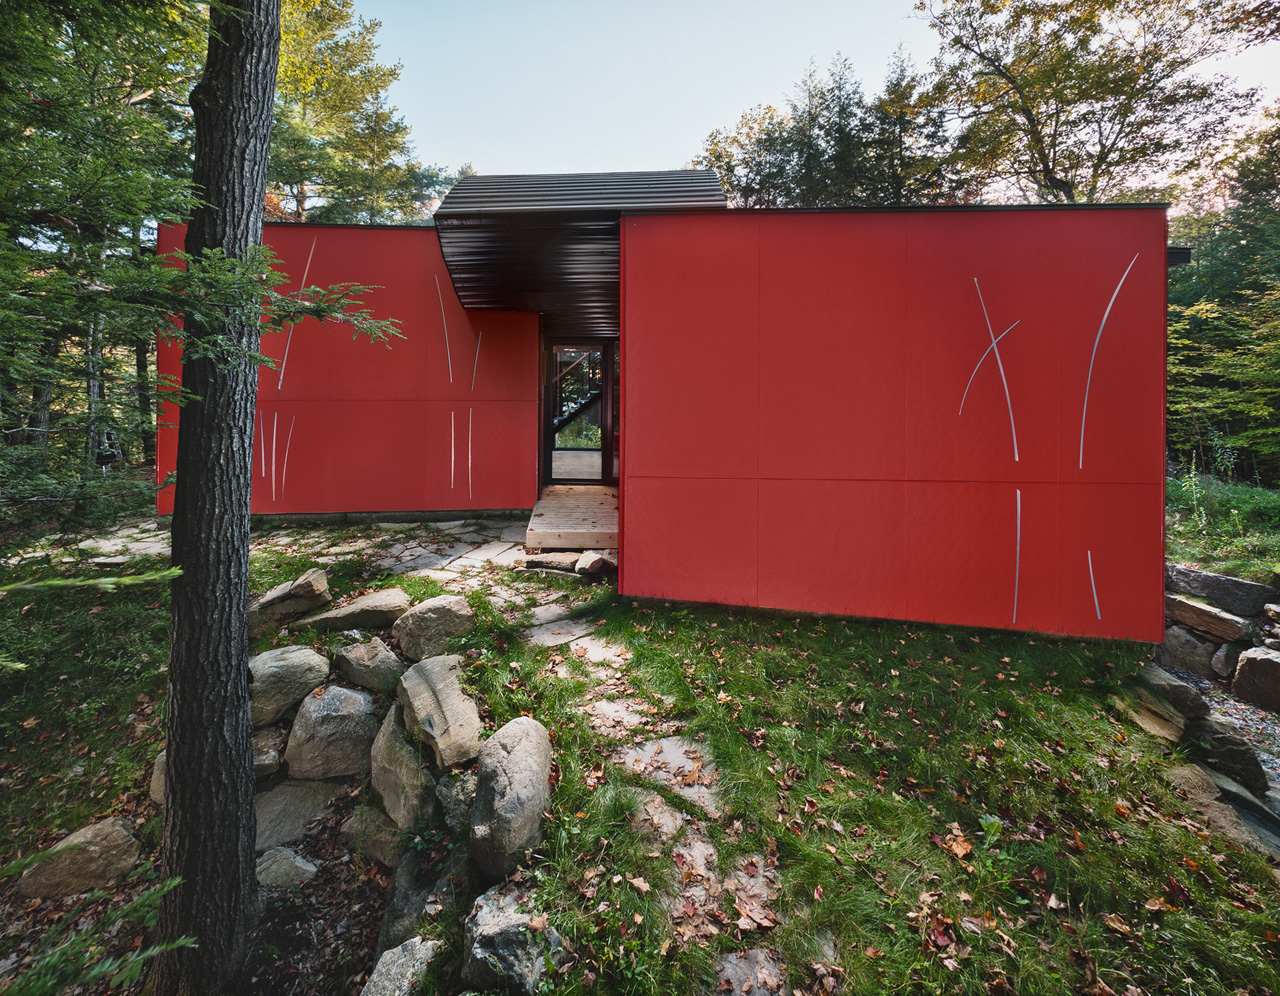 Hill-Maheux Cottage / Kariouk Associates, © Photolux Studios (Christian Lalonde)